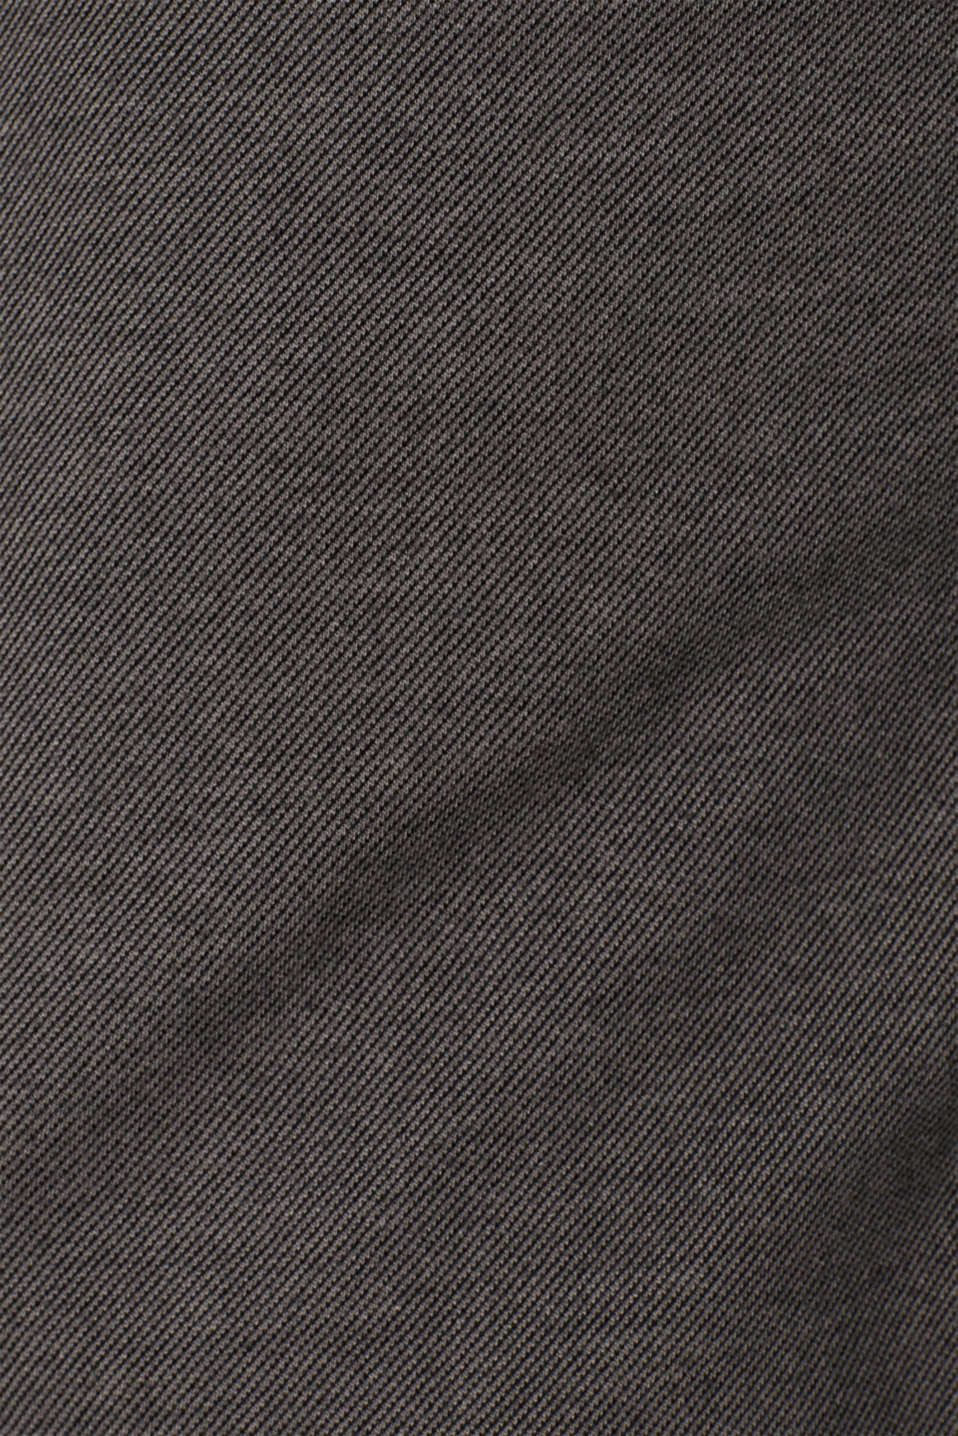 Long sleeve jersey top in 100% cotton, GREY, detail image number 4